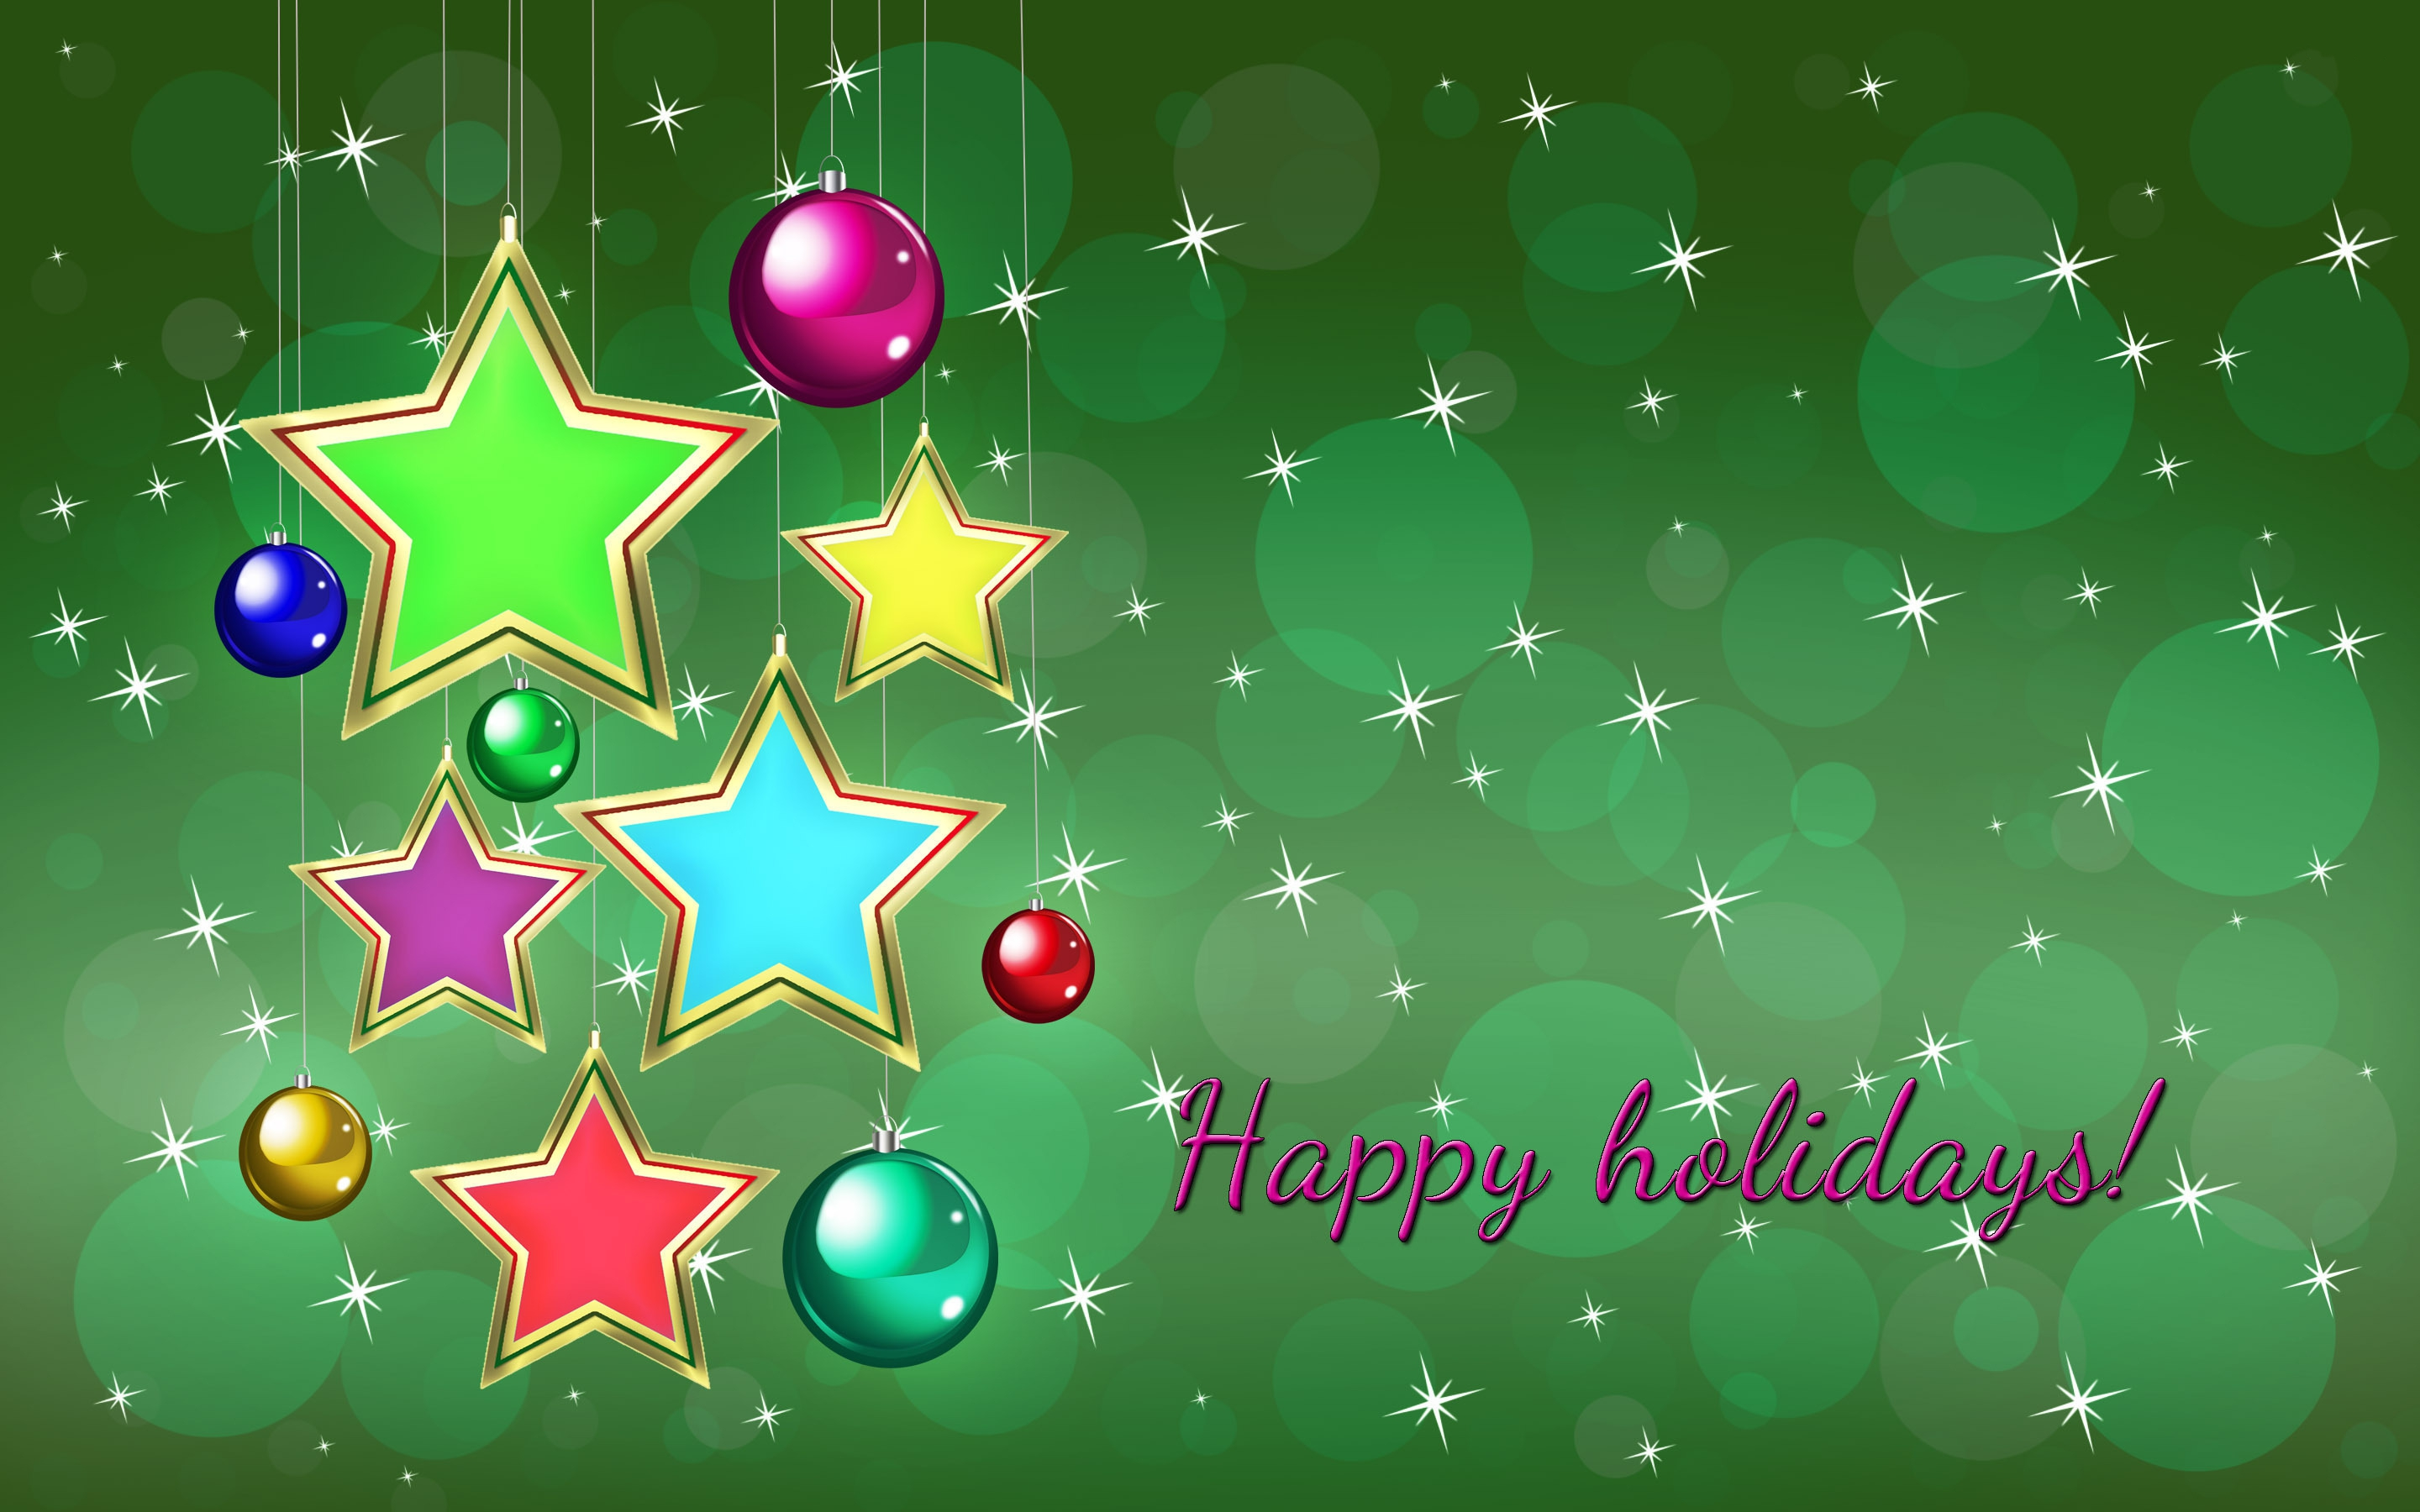 Download Holiday Hd Wallpapers   Happy Holidays Wallpaper 2880x1800